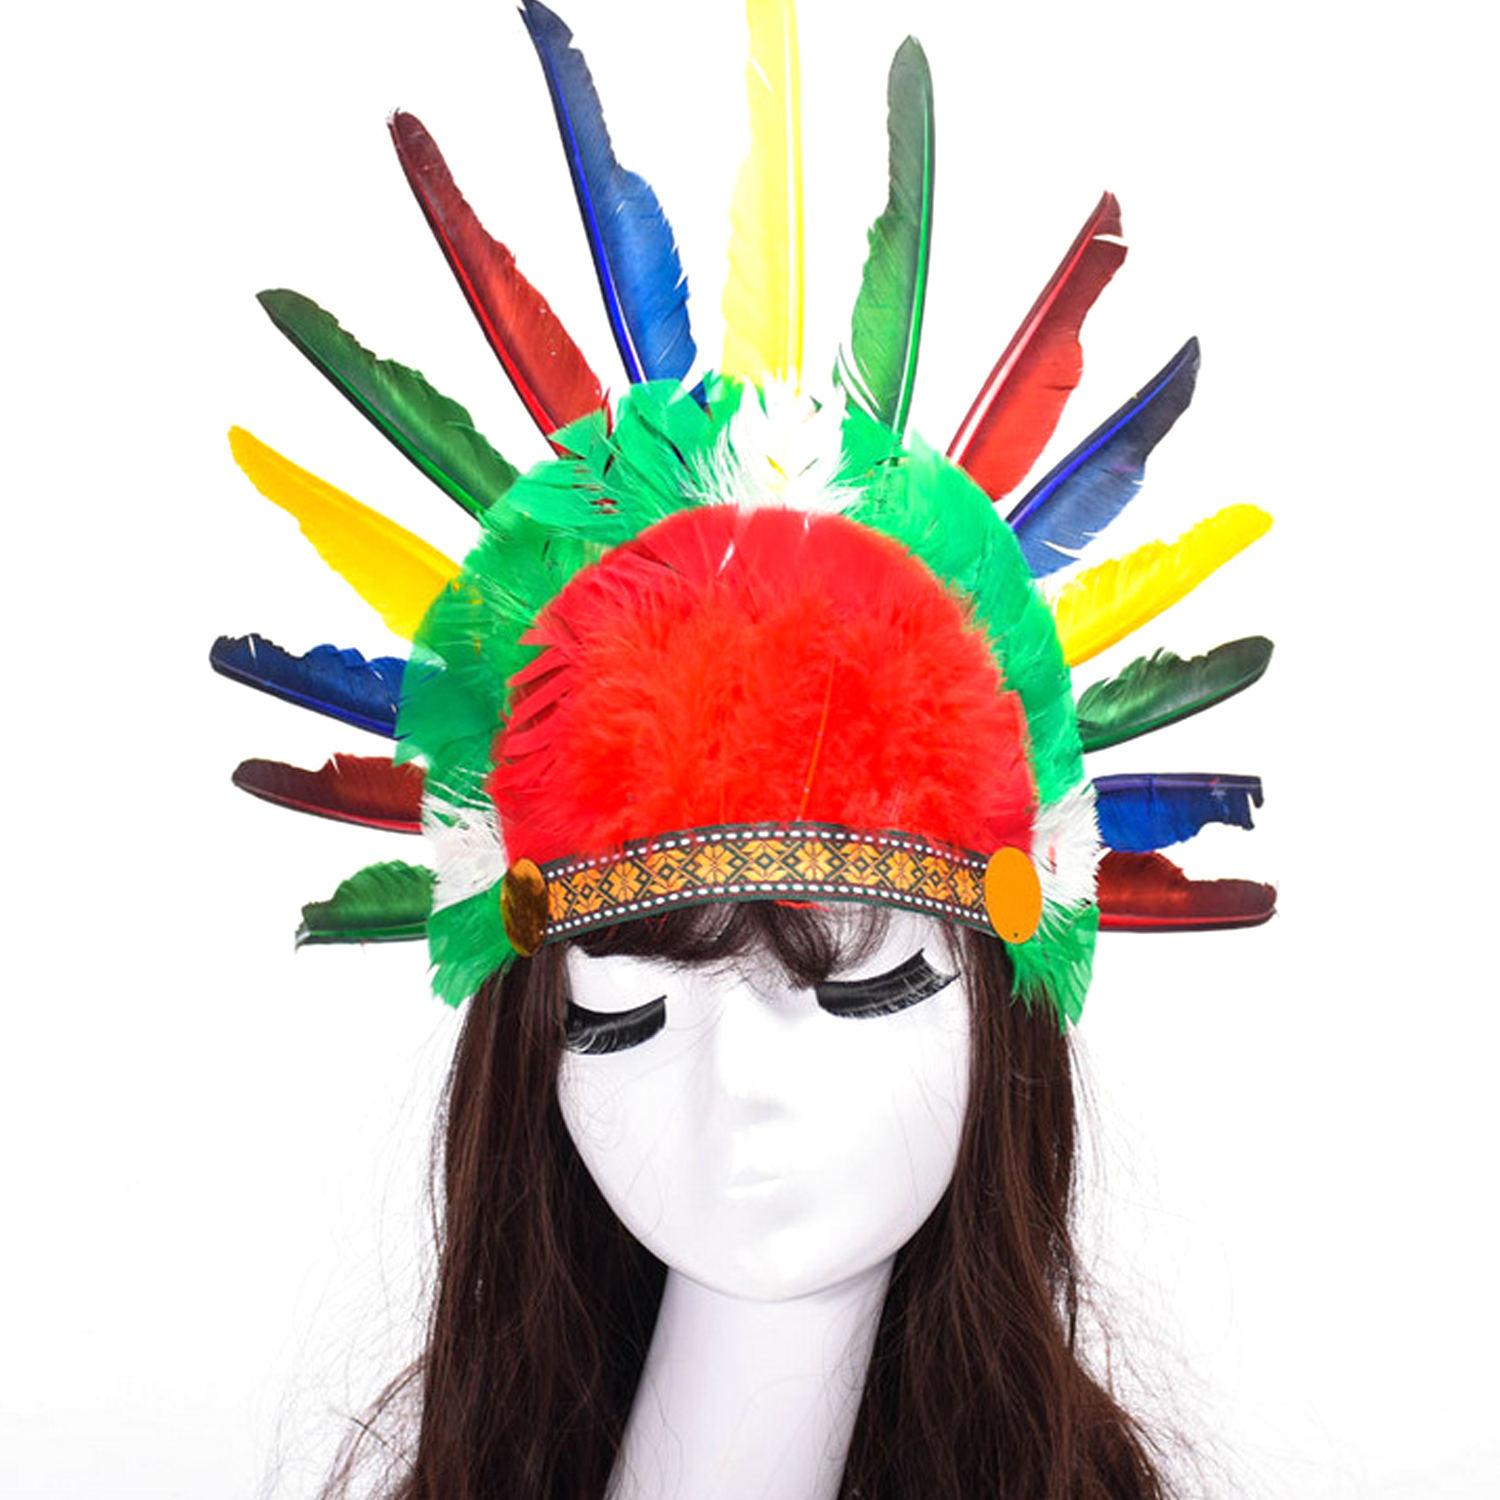 Vintage Indian Style Feather Headband Headpiece Headdress Toy For Kids Adults Thanksgiving Masquerade Party Costume